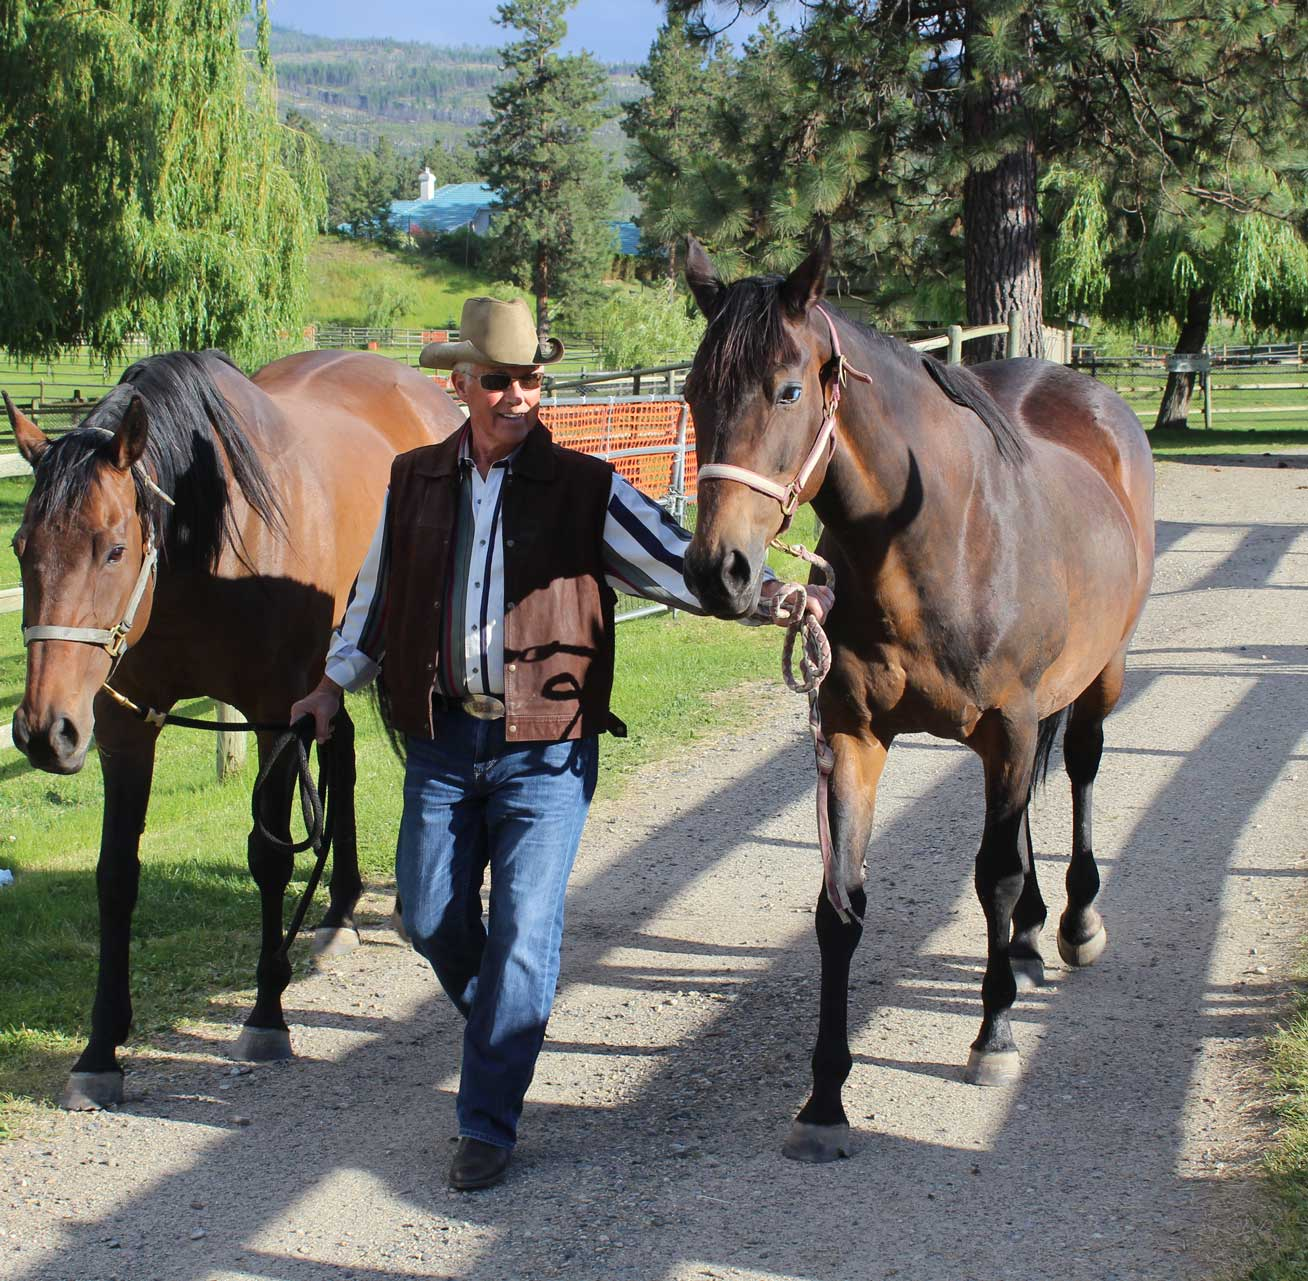 David Pihl Leading Horses Down a Path